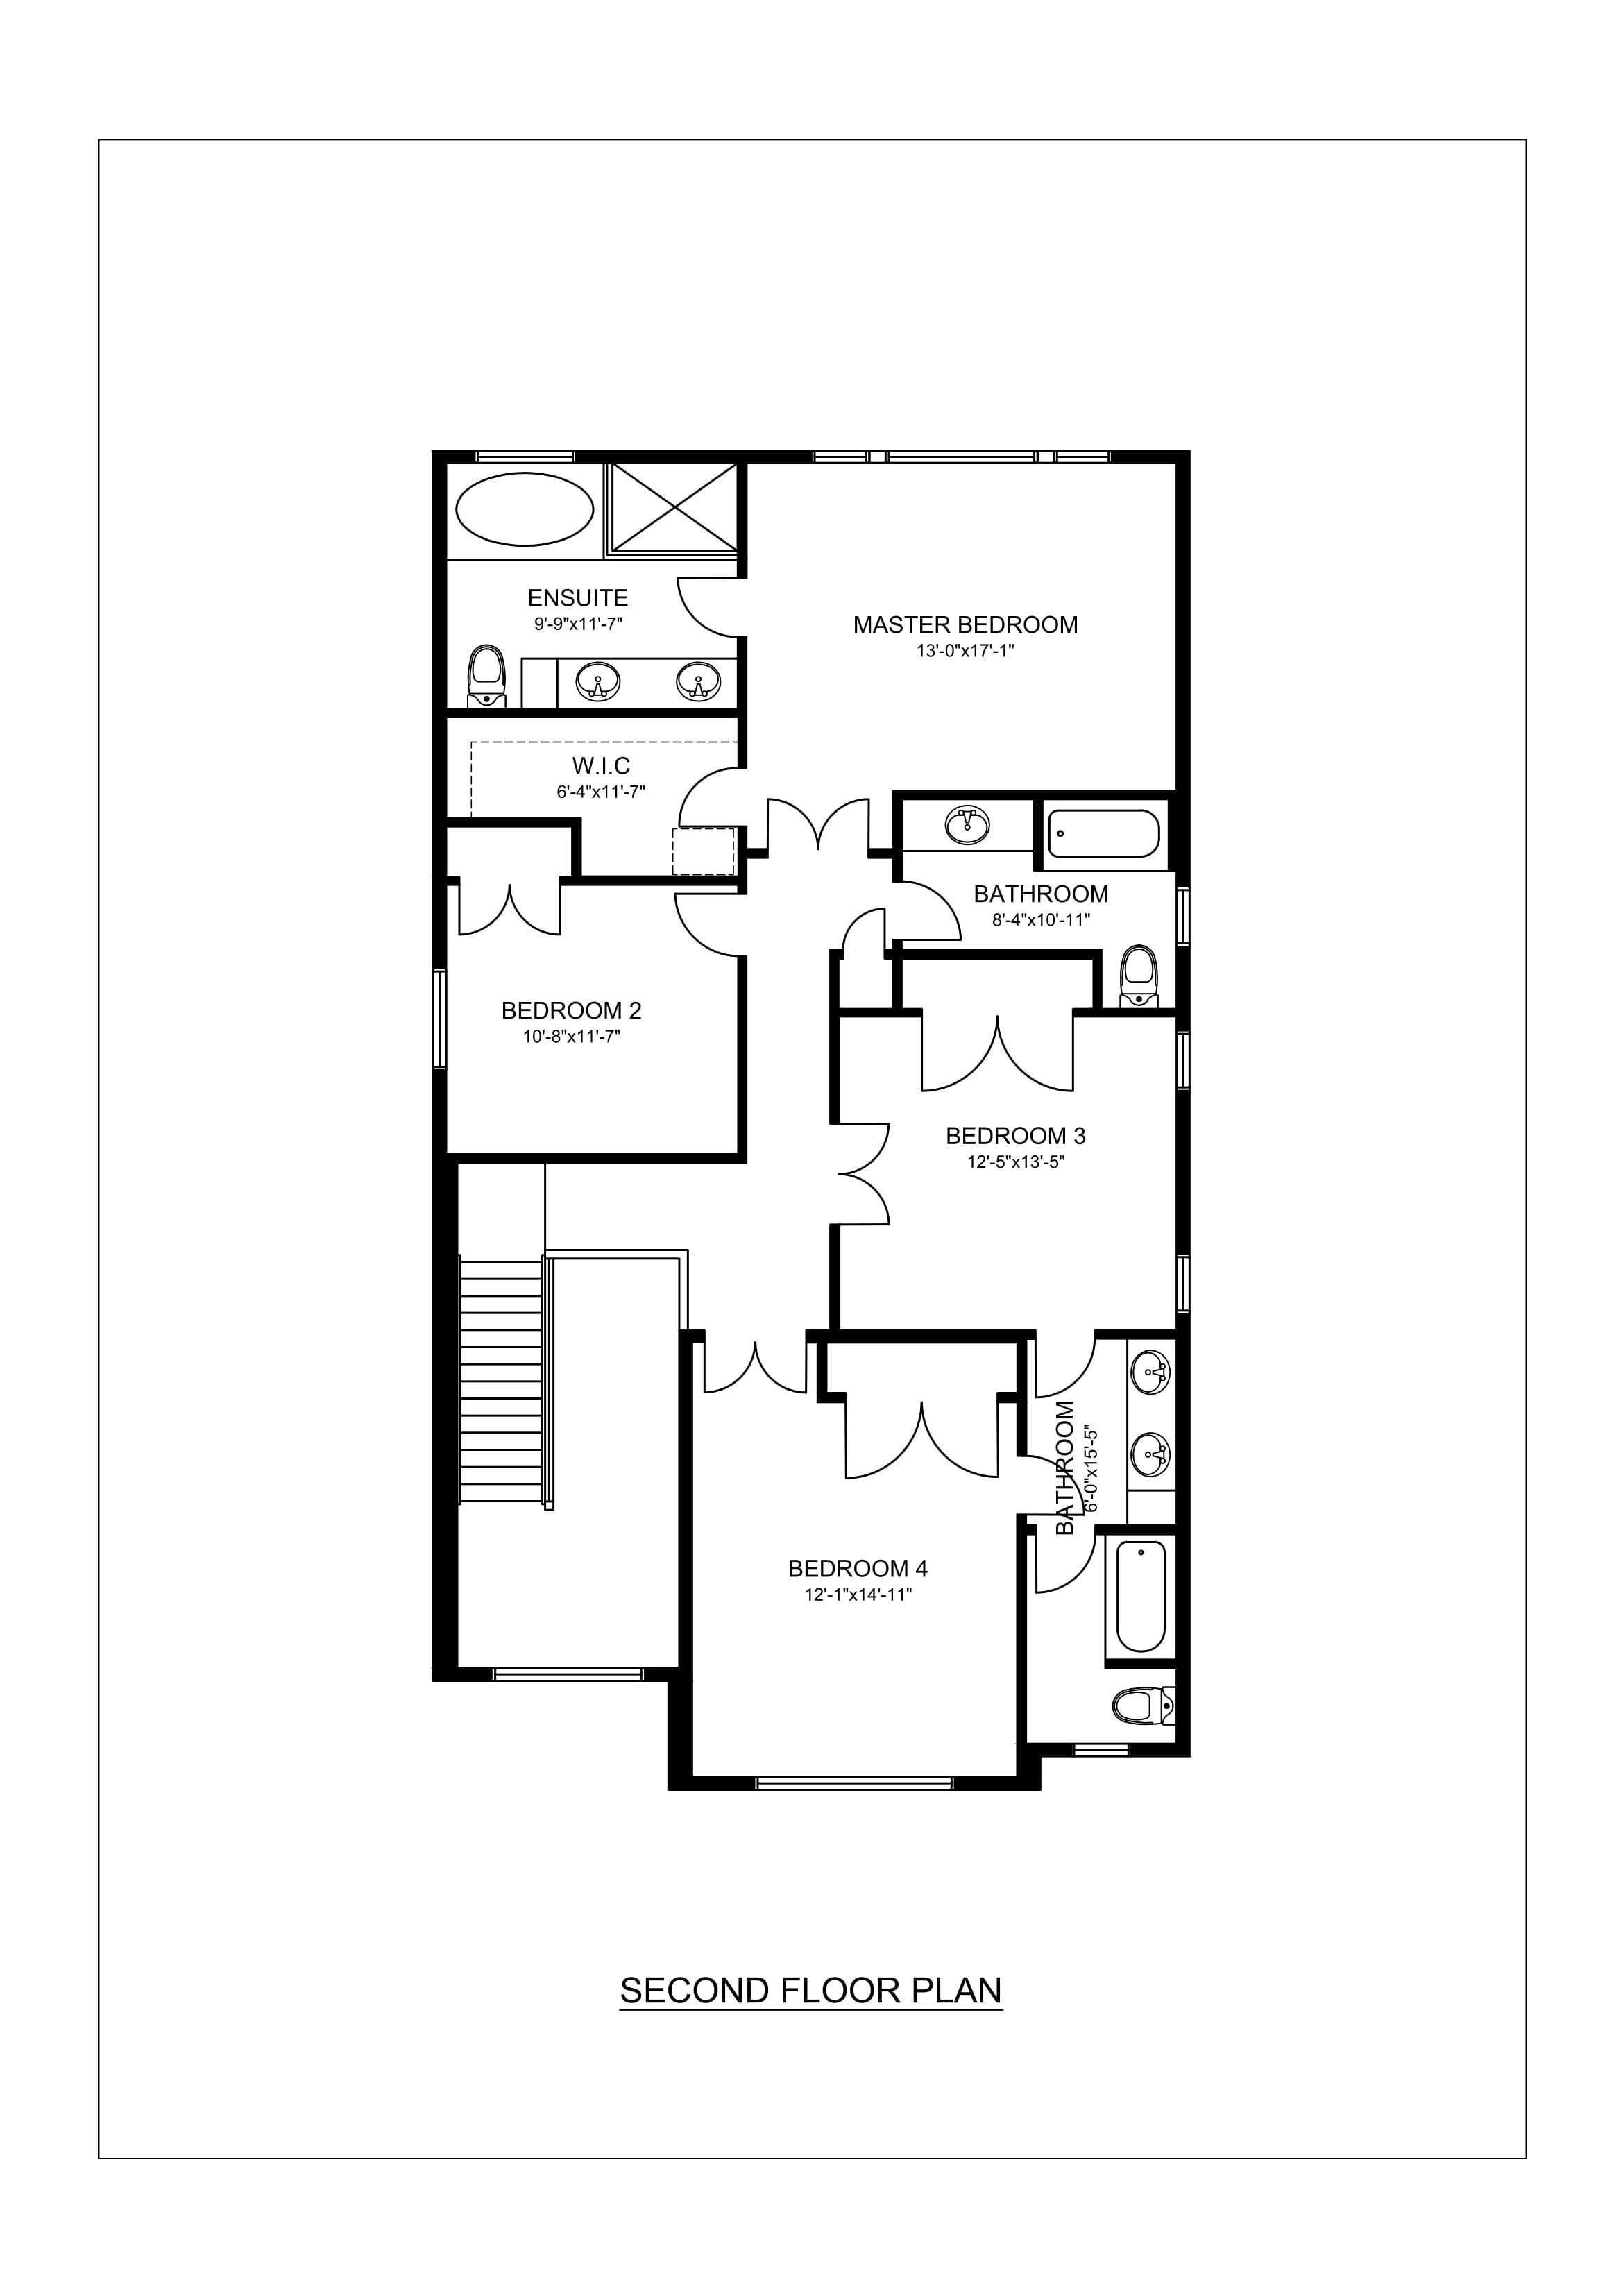 house sketch images 26